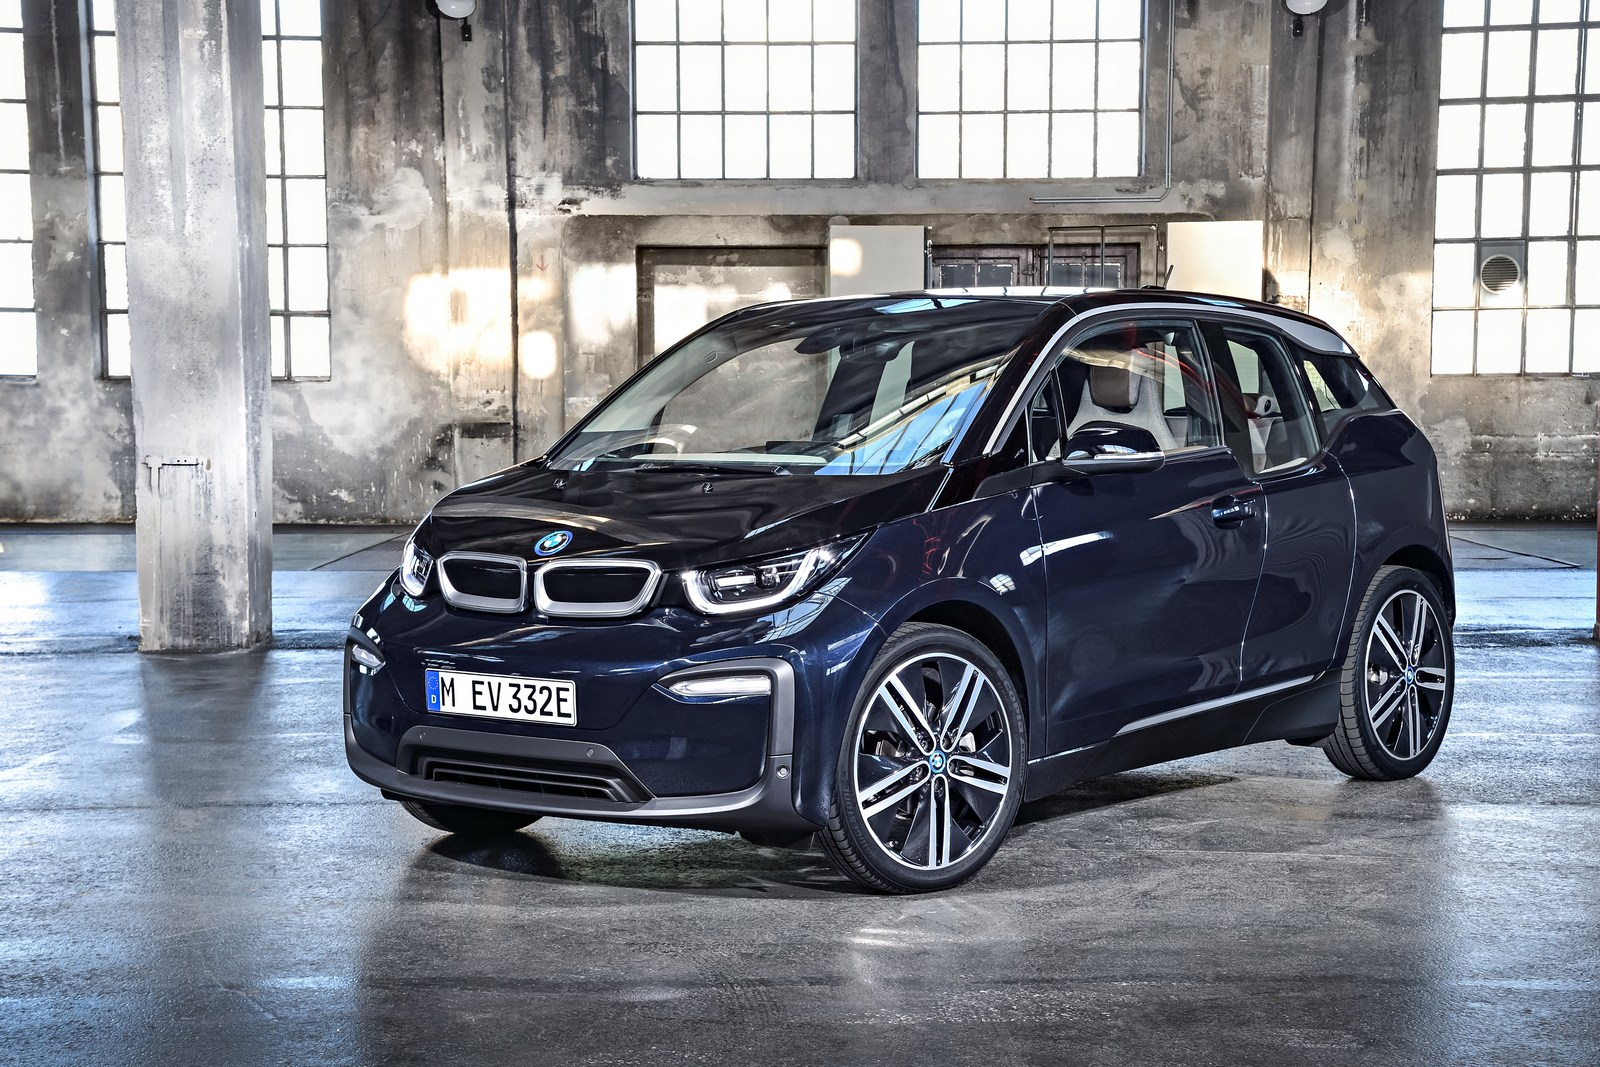 2018 Bmw I3 Price List Reveals I3s Rex Starts At 51 500 Autoevolution